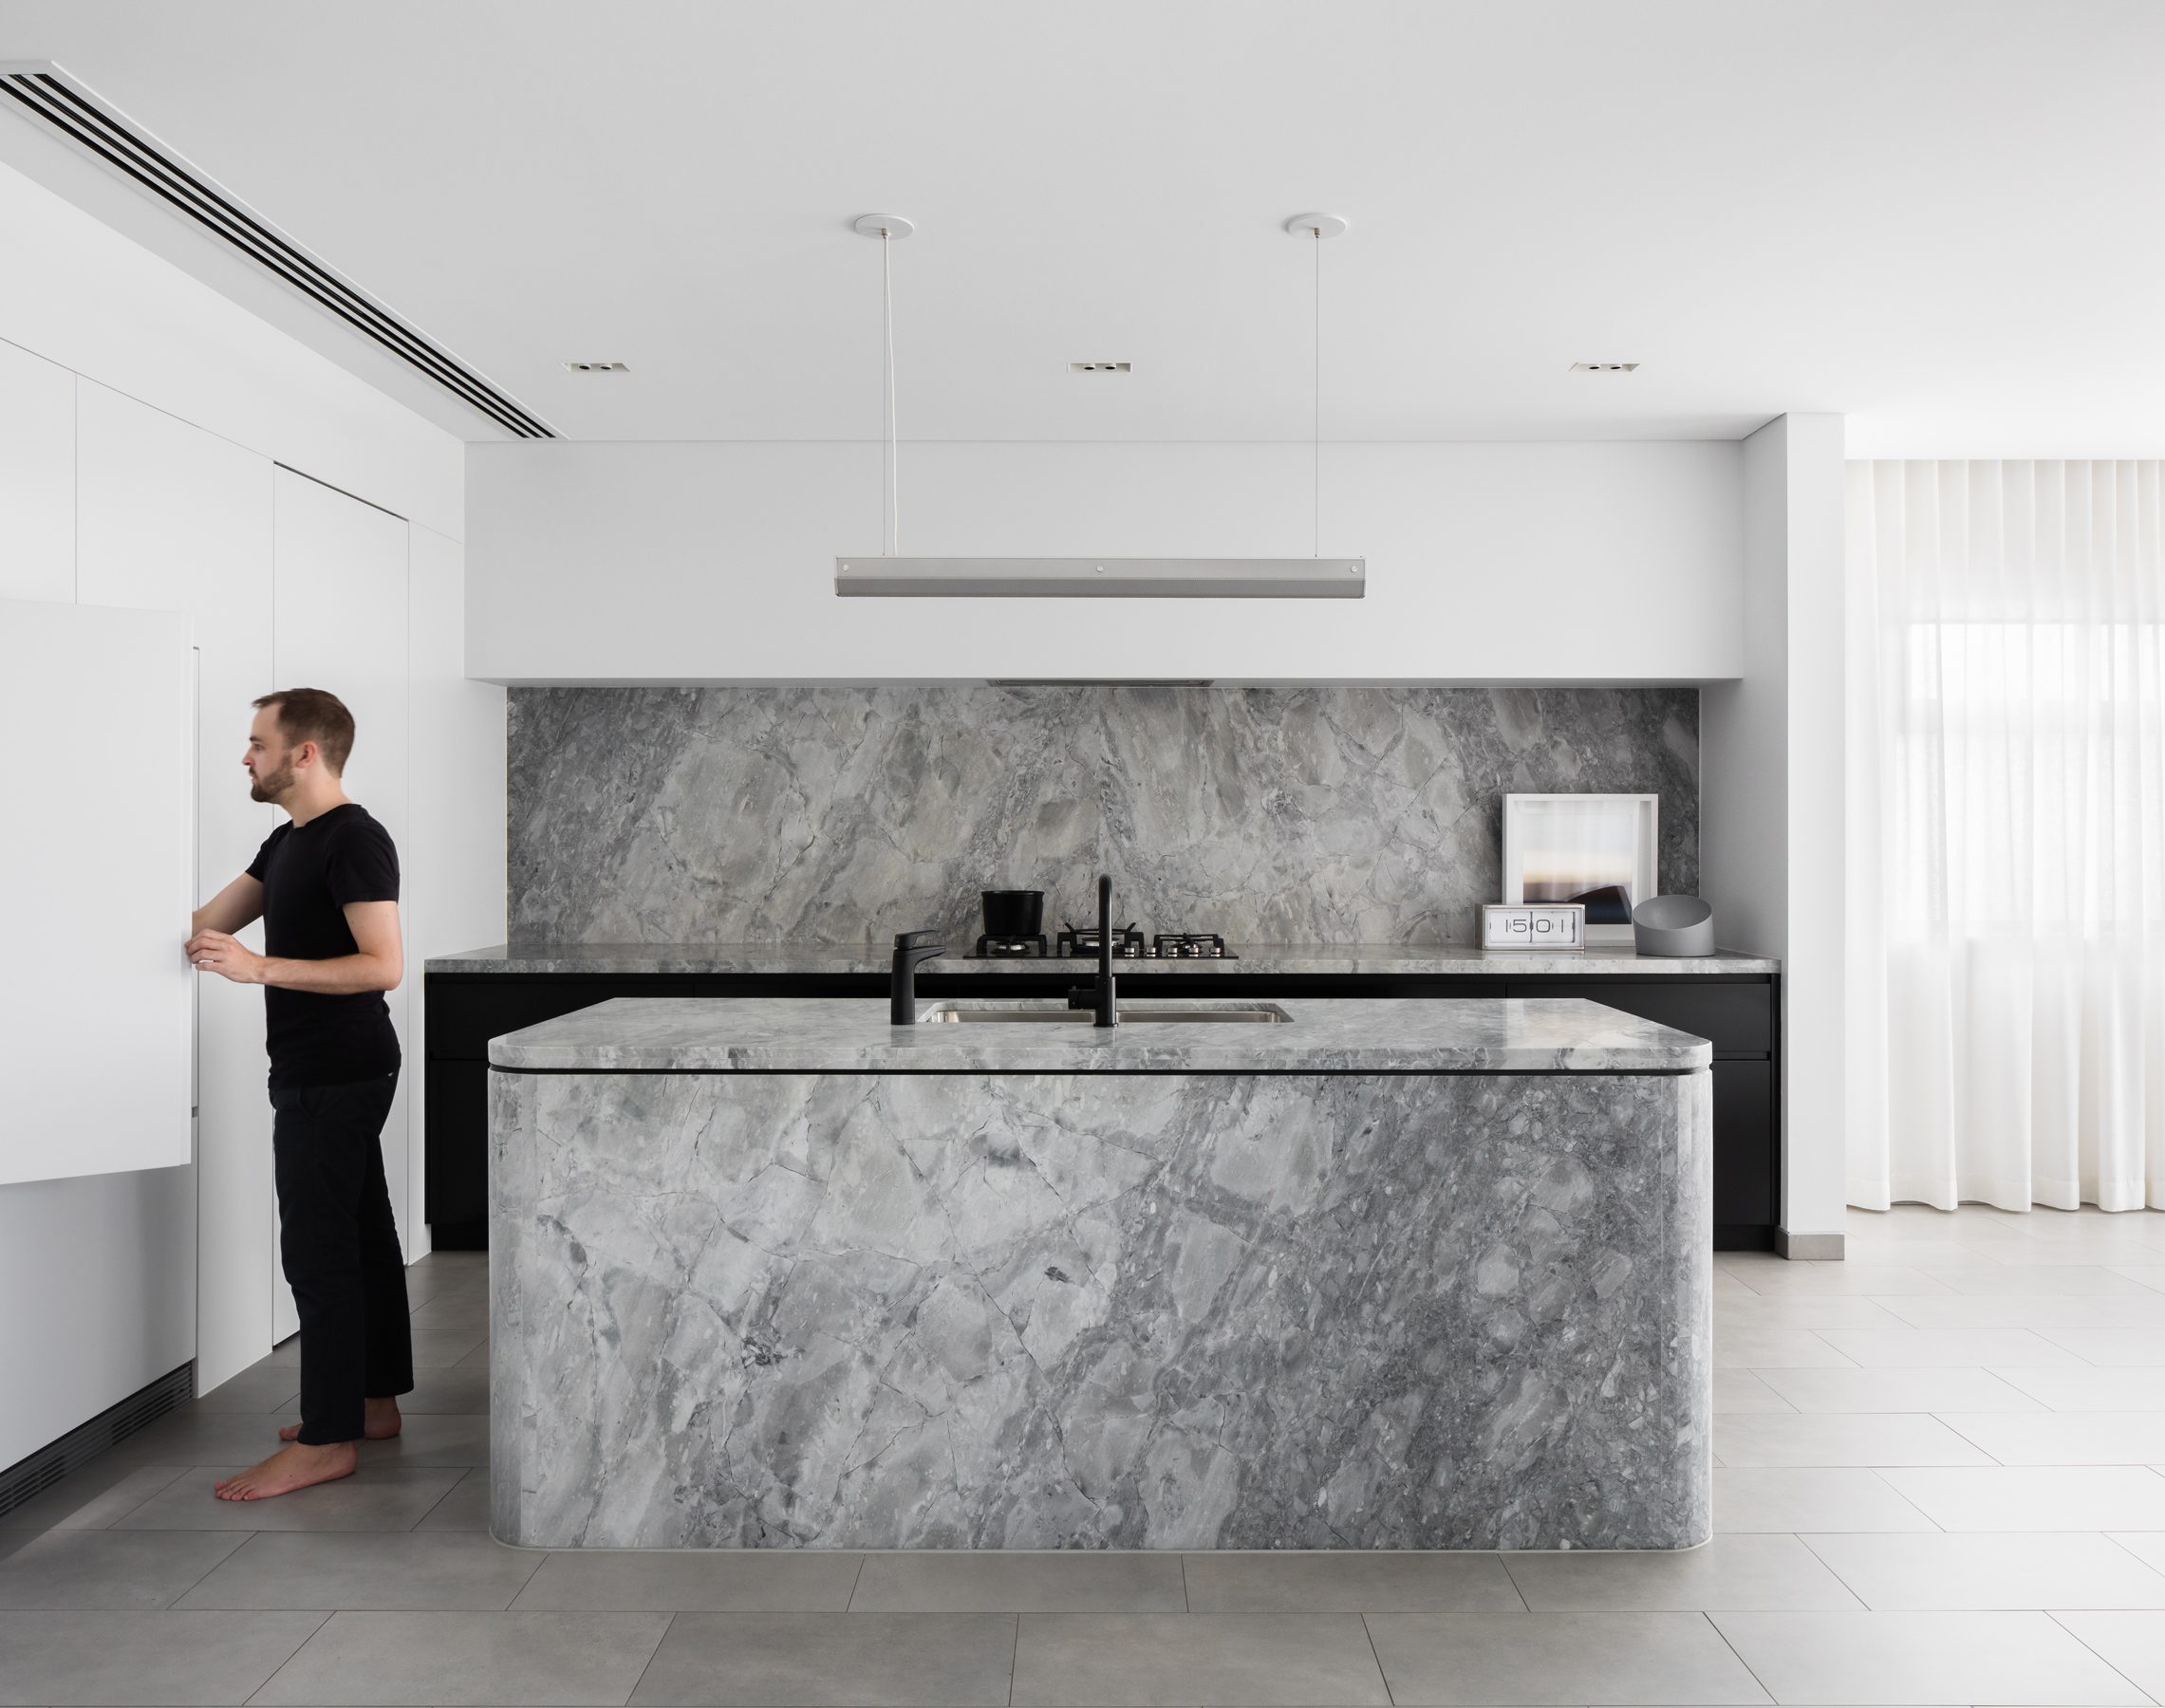 Broad Residence By Baldwin & Bagnall Local Residential Design And Architecture Sydney,nsw Image 4